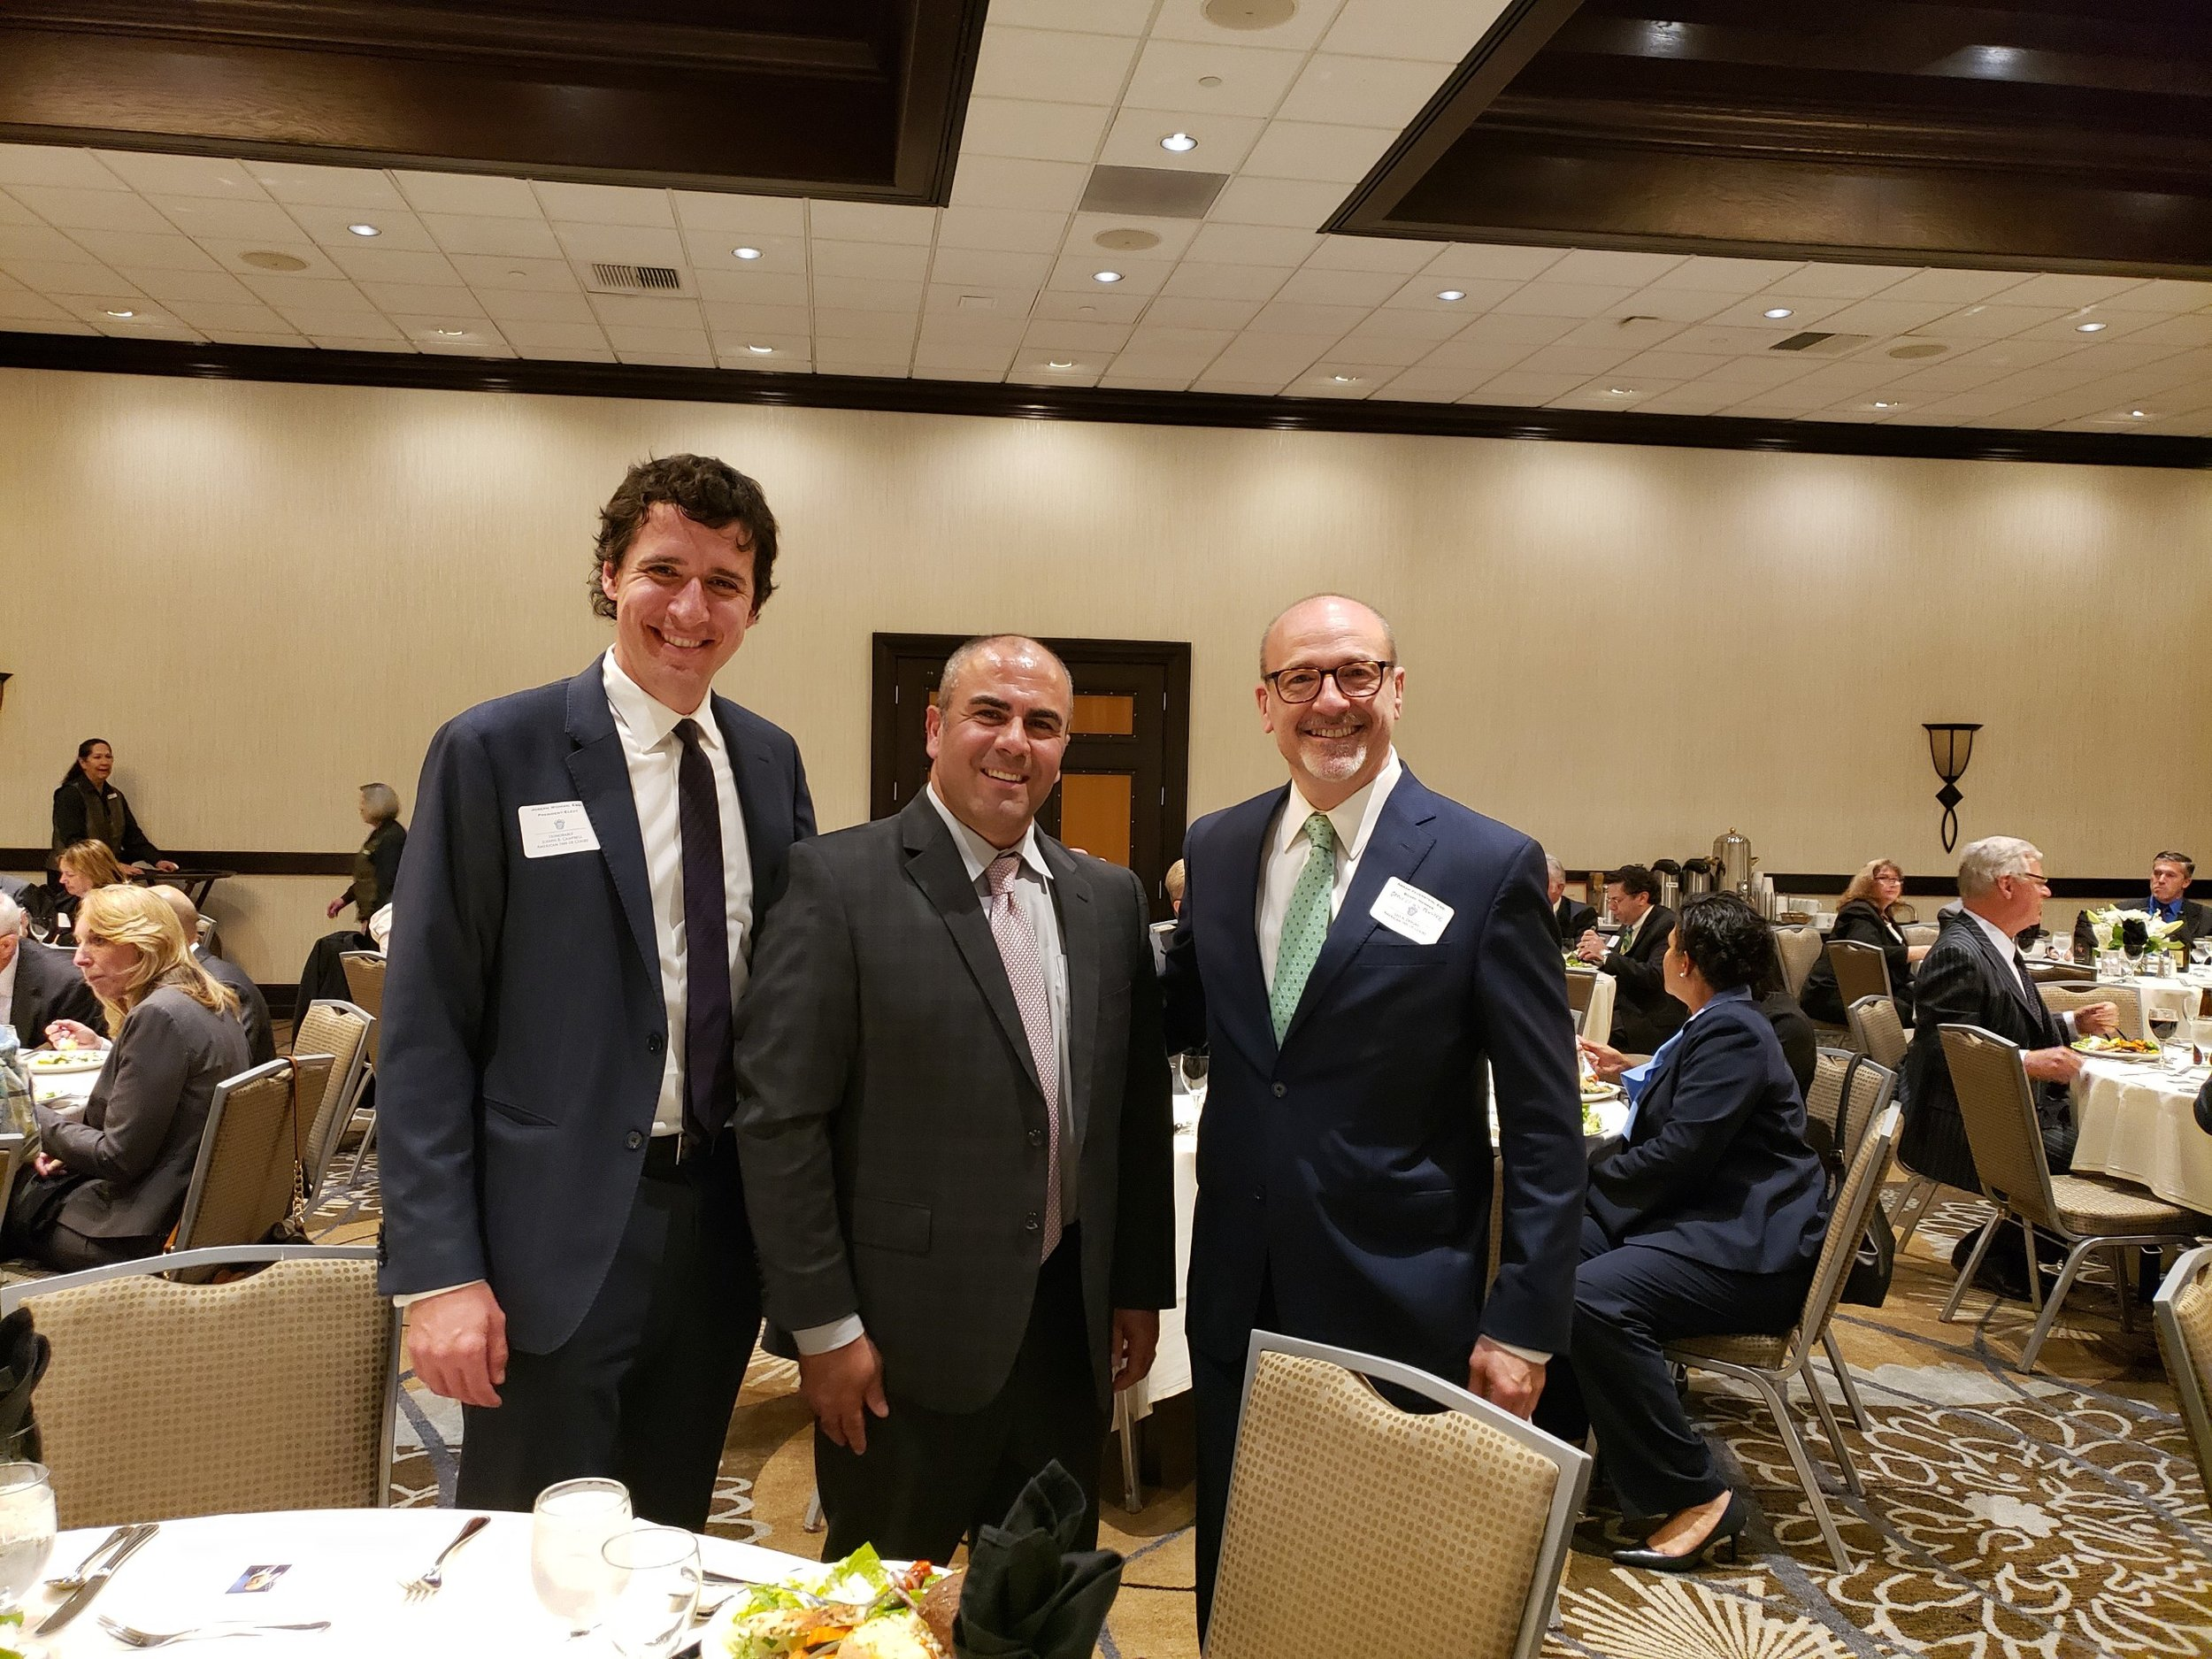 "(L-R) Joseph Widman (Assistant U.S. Attorney for the Central District of California and President-Elect of the Honorable Joseph B. Campbell American Inn of Court). Hon. Antoine ""Tony"" Raphael (San Bernardino Superior Court Judge), and Abram Feuerstein (Assistant U.S. Trustee for the Region 16 of the U.S. Attorney's Office, Central District of California and Member-at-large of the Leo A. Deegan American Inn of Court)."